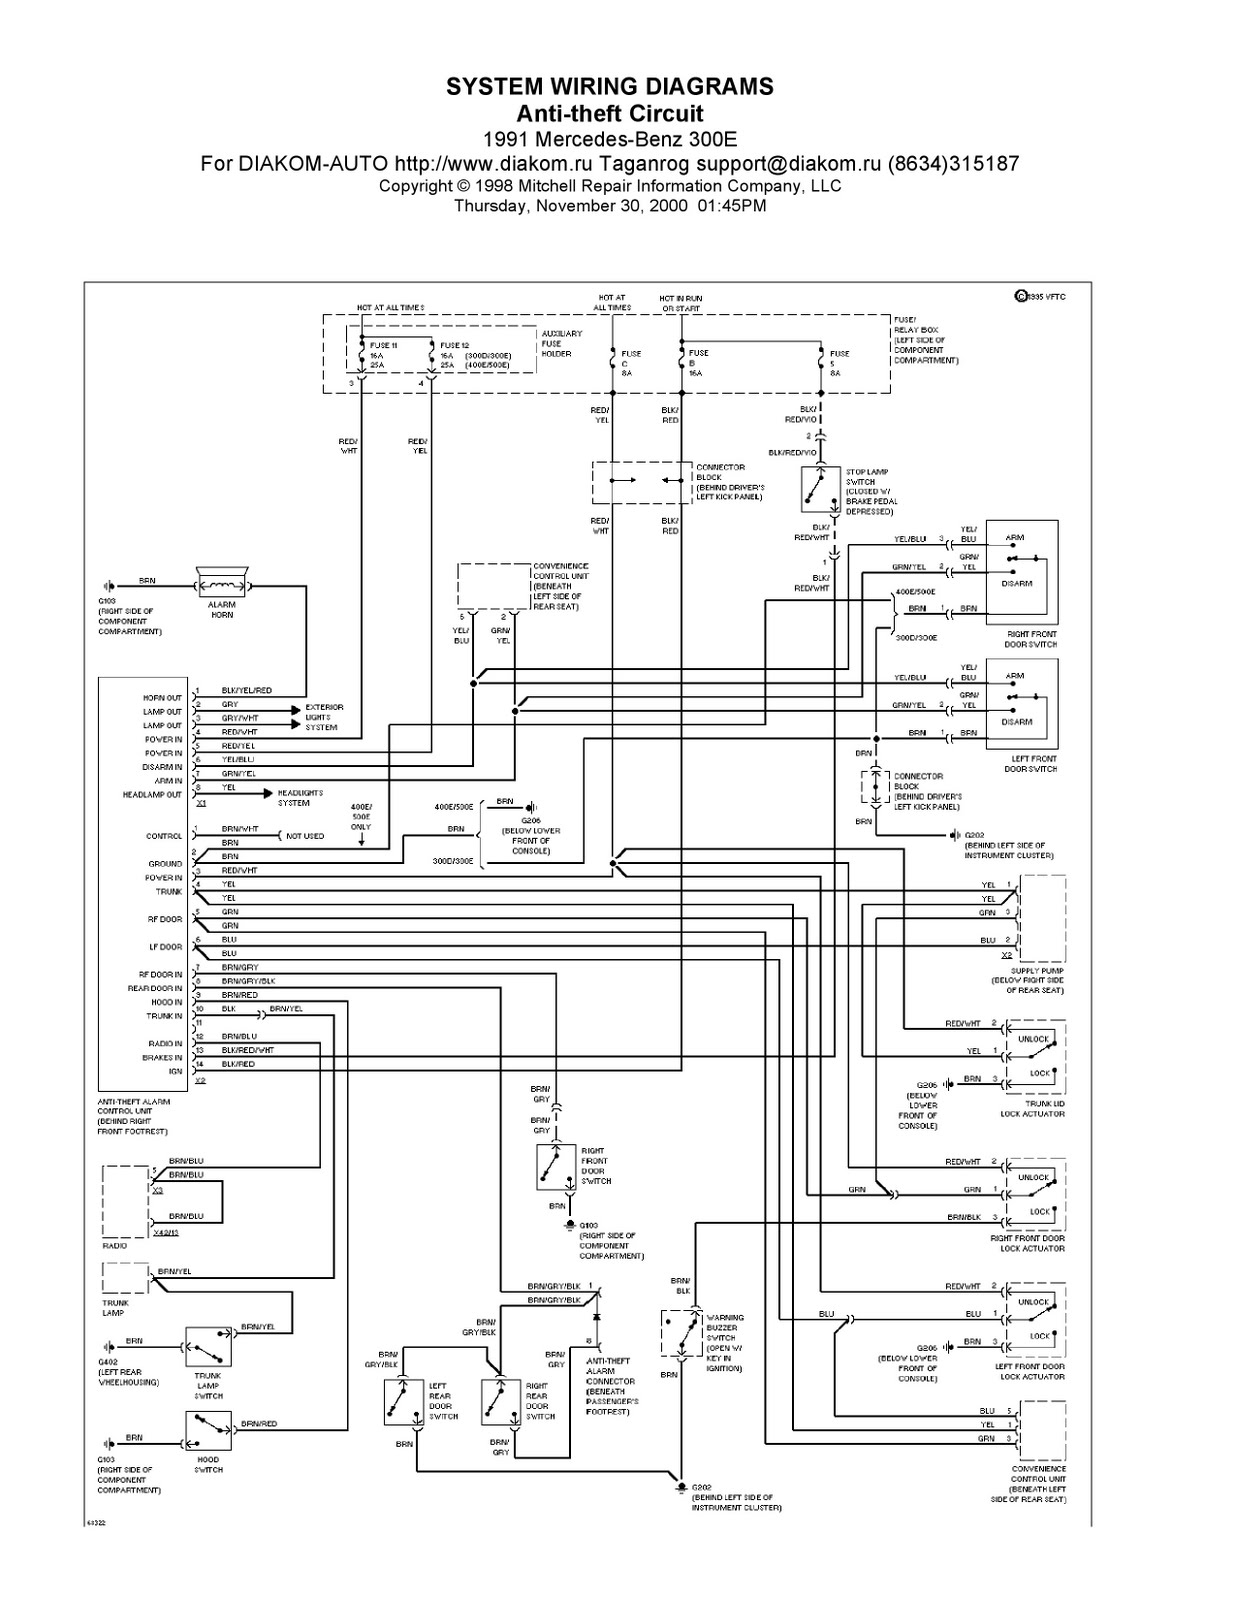 1974 Mercedes Benz Wiring Diagram Free Online 1975 Fiat Starter Schematics Change Your Idea With Bmw 2002